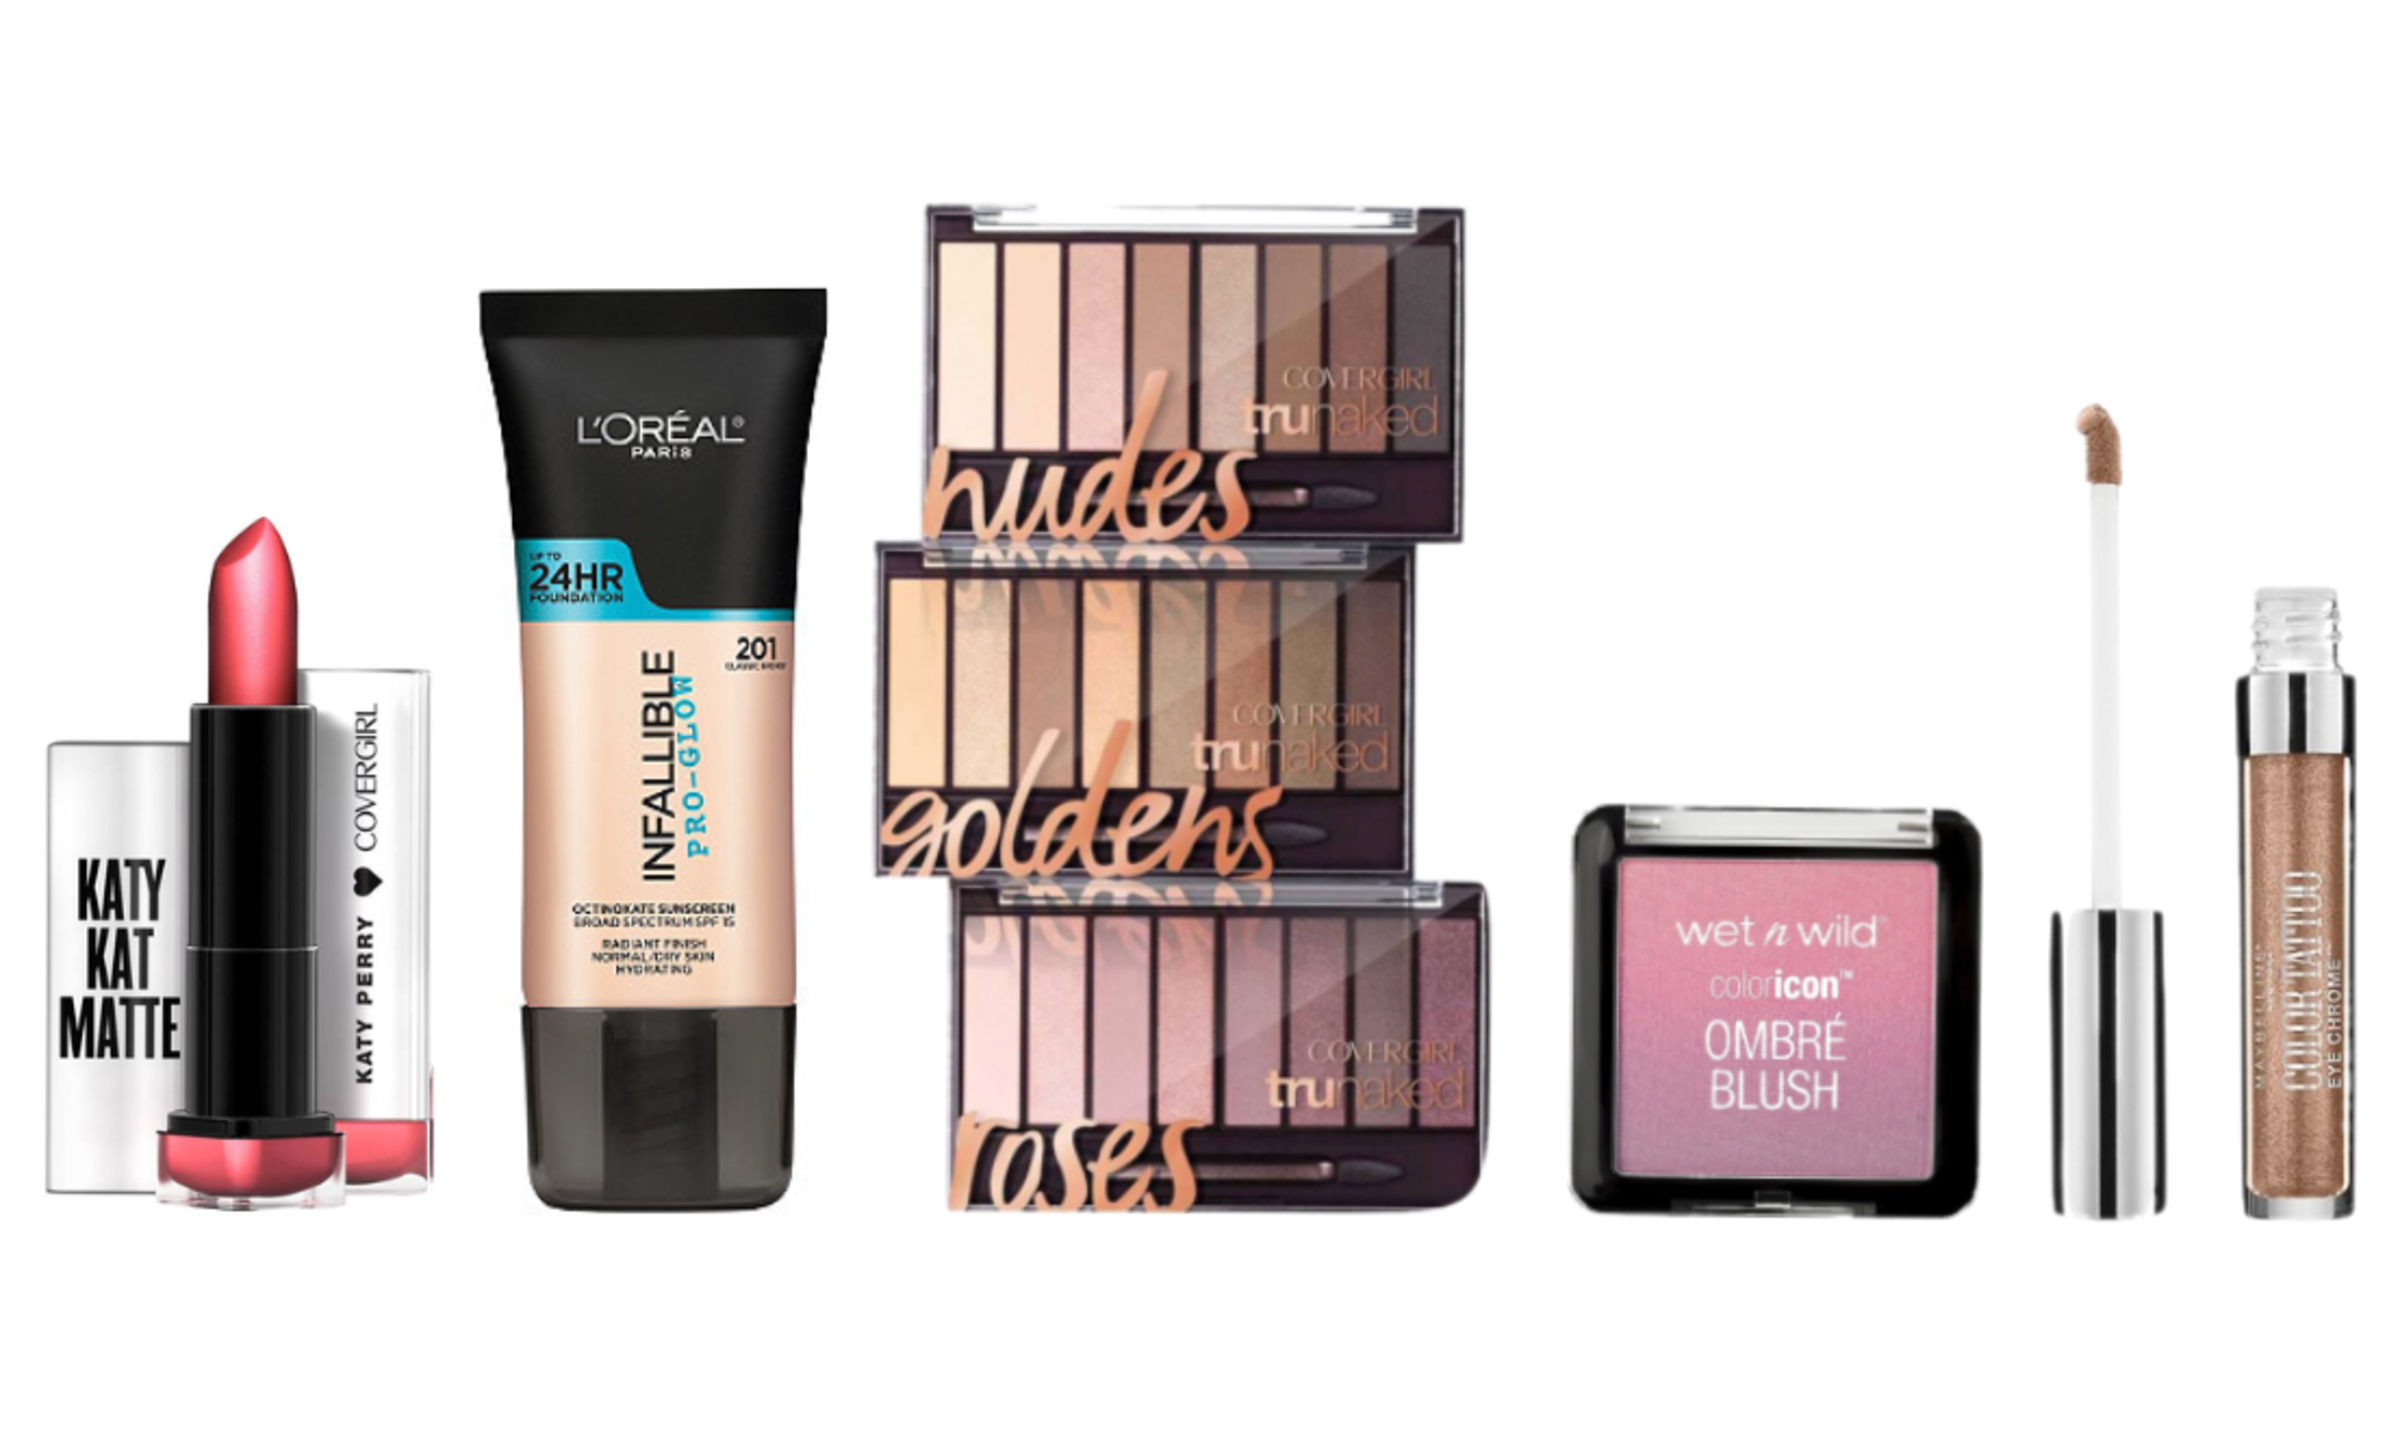 We review Maybelline Color Tattoo cream shadow, L'Oreal Glow Foundation, Katy Kat Lipstick, Covergirl Nudes palettes, and more.